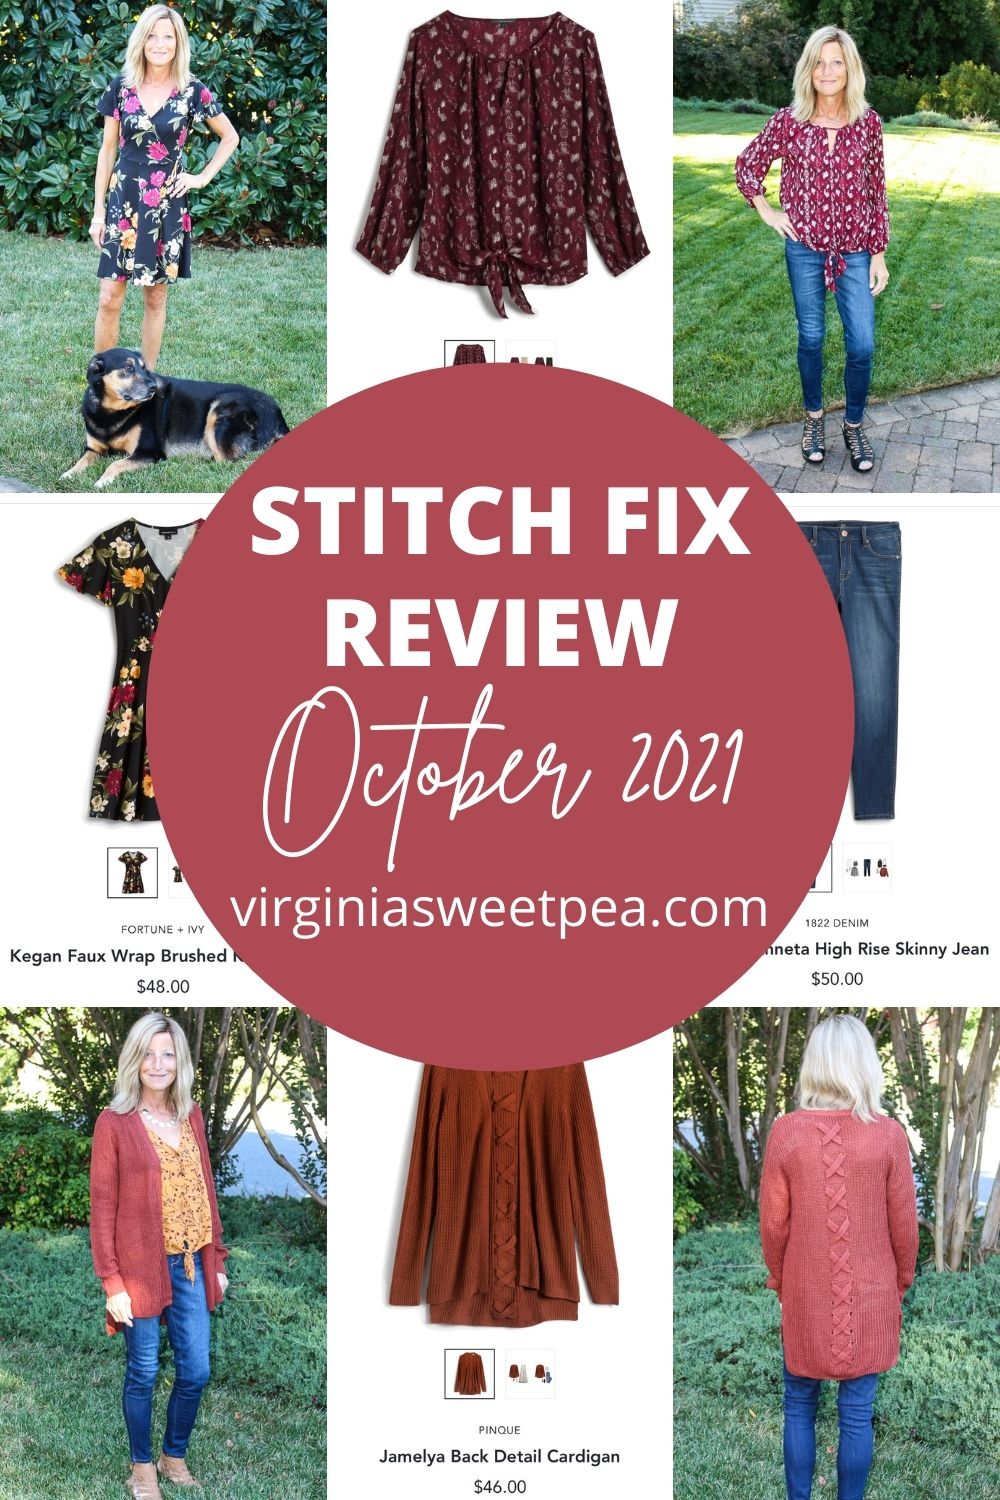 Stitch Fix Review for October 2021